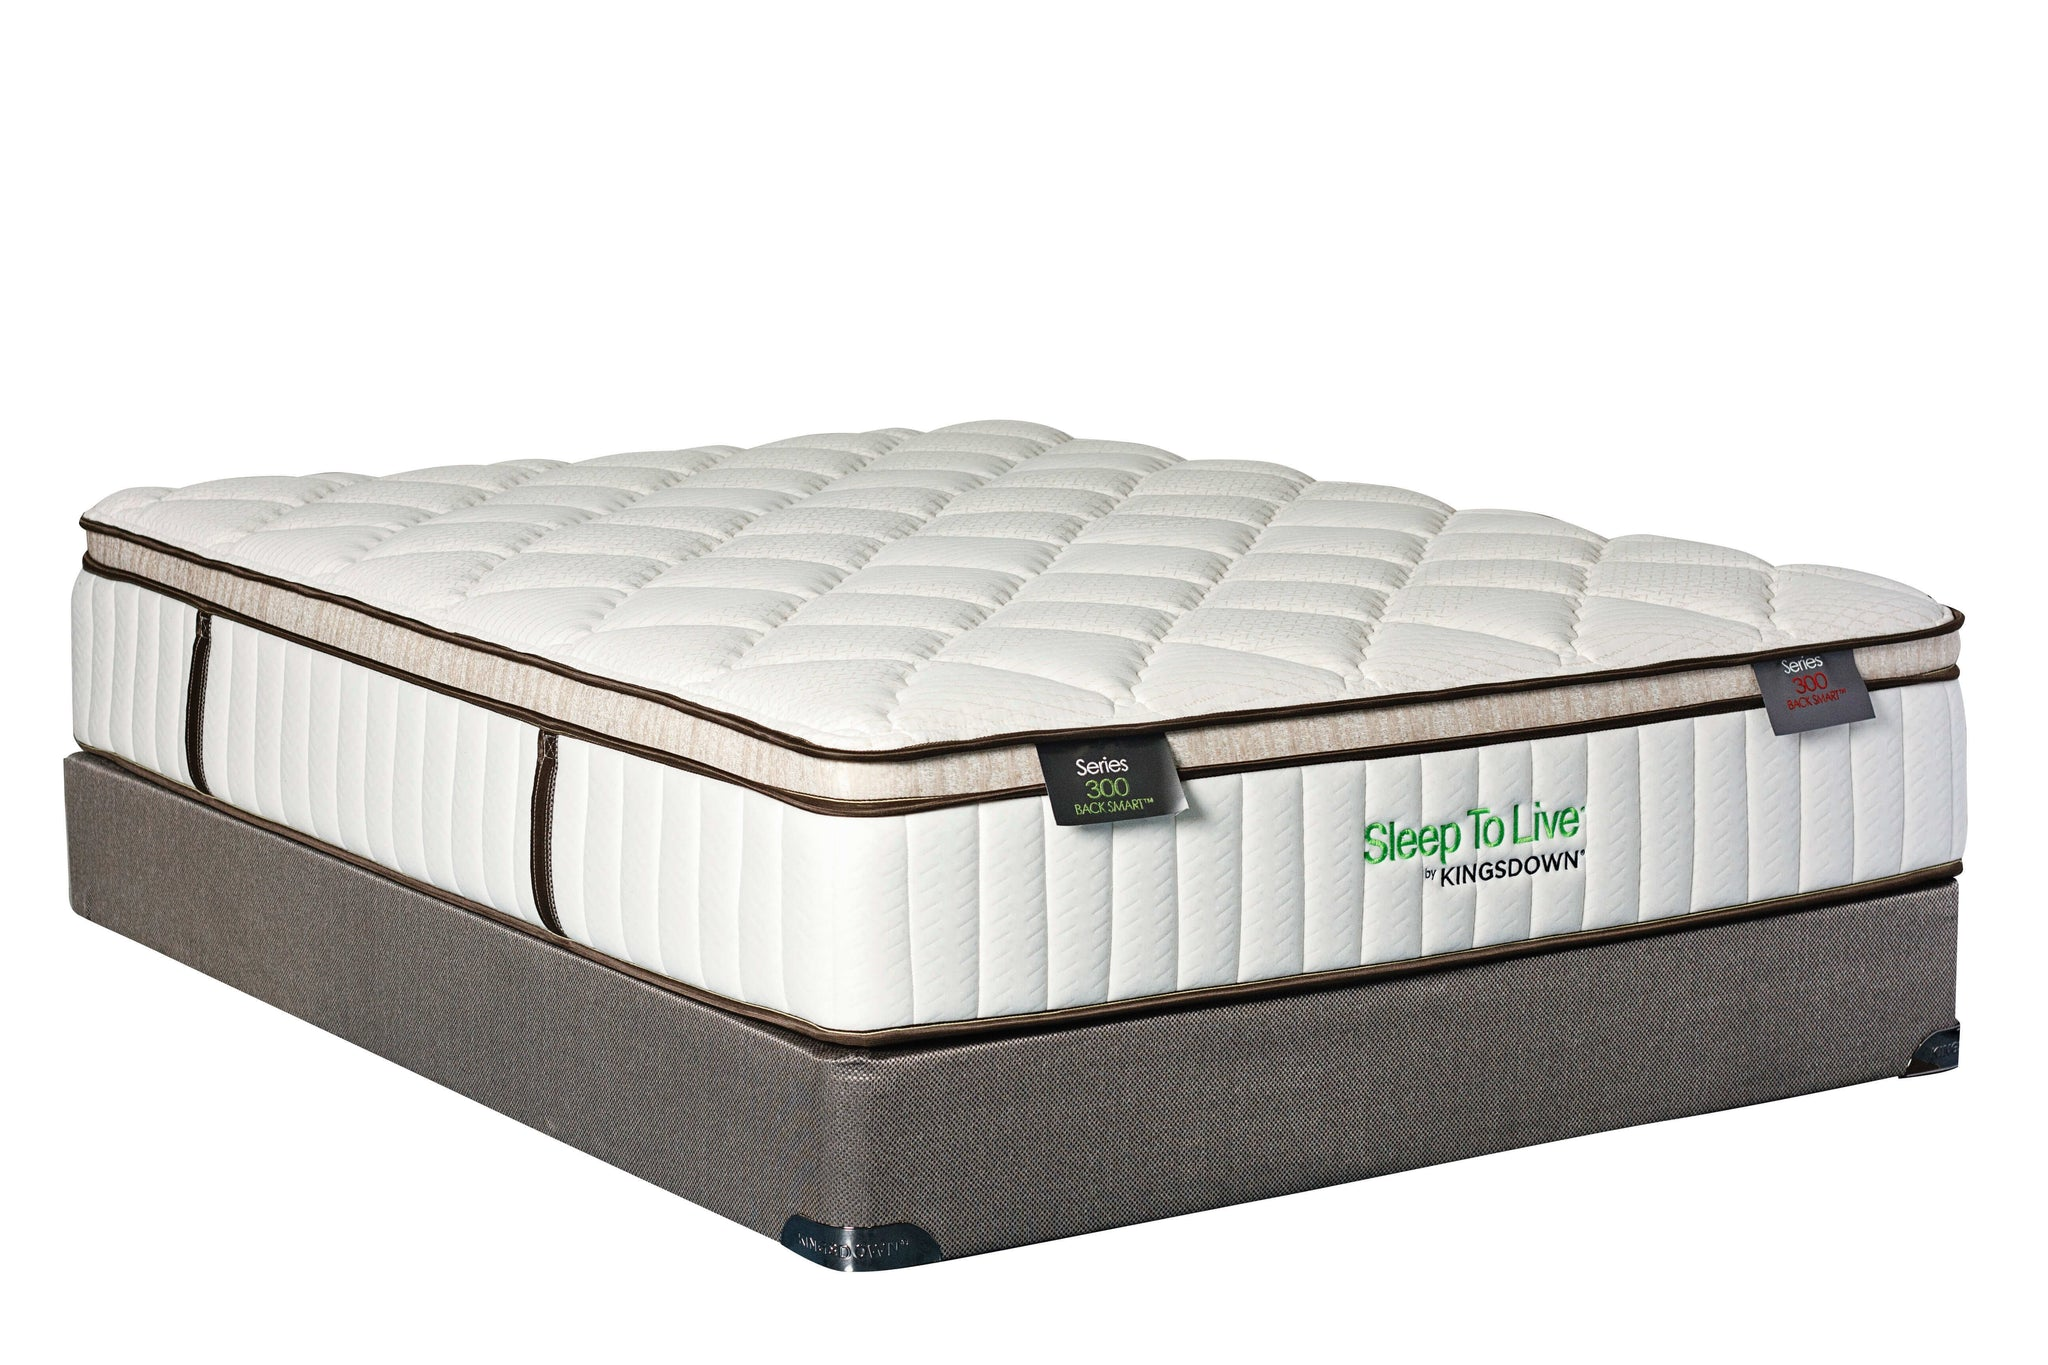 Kingsdown Sleep To Live 300 Green Mattress